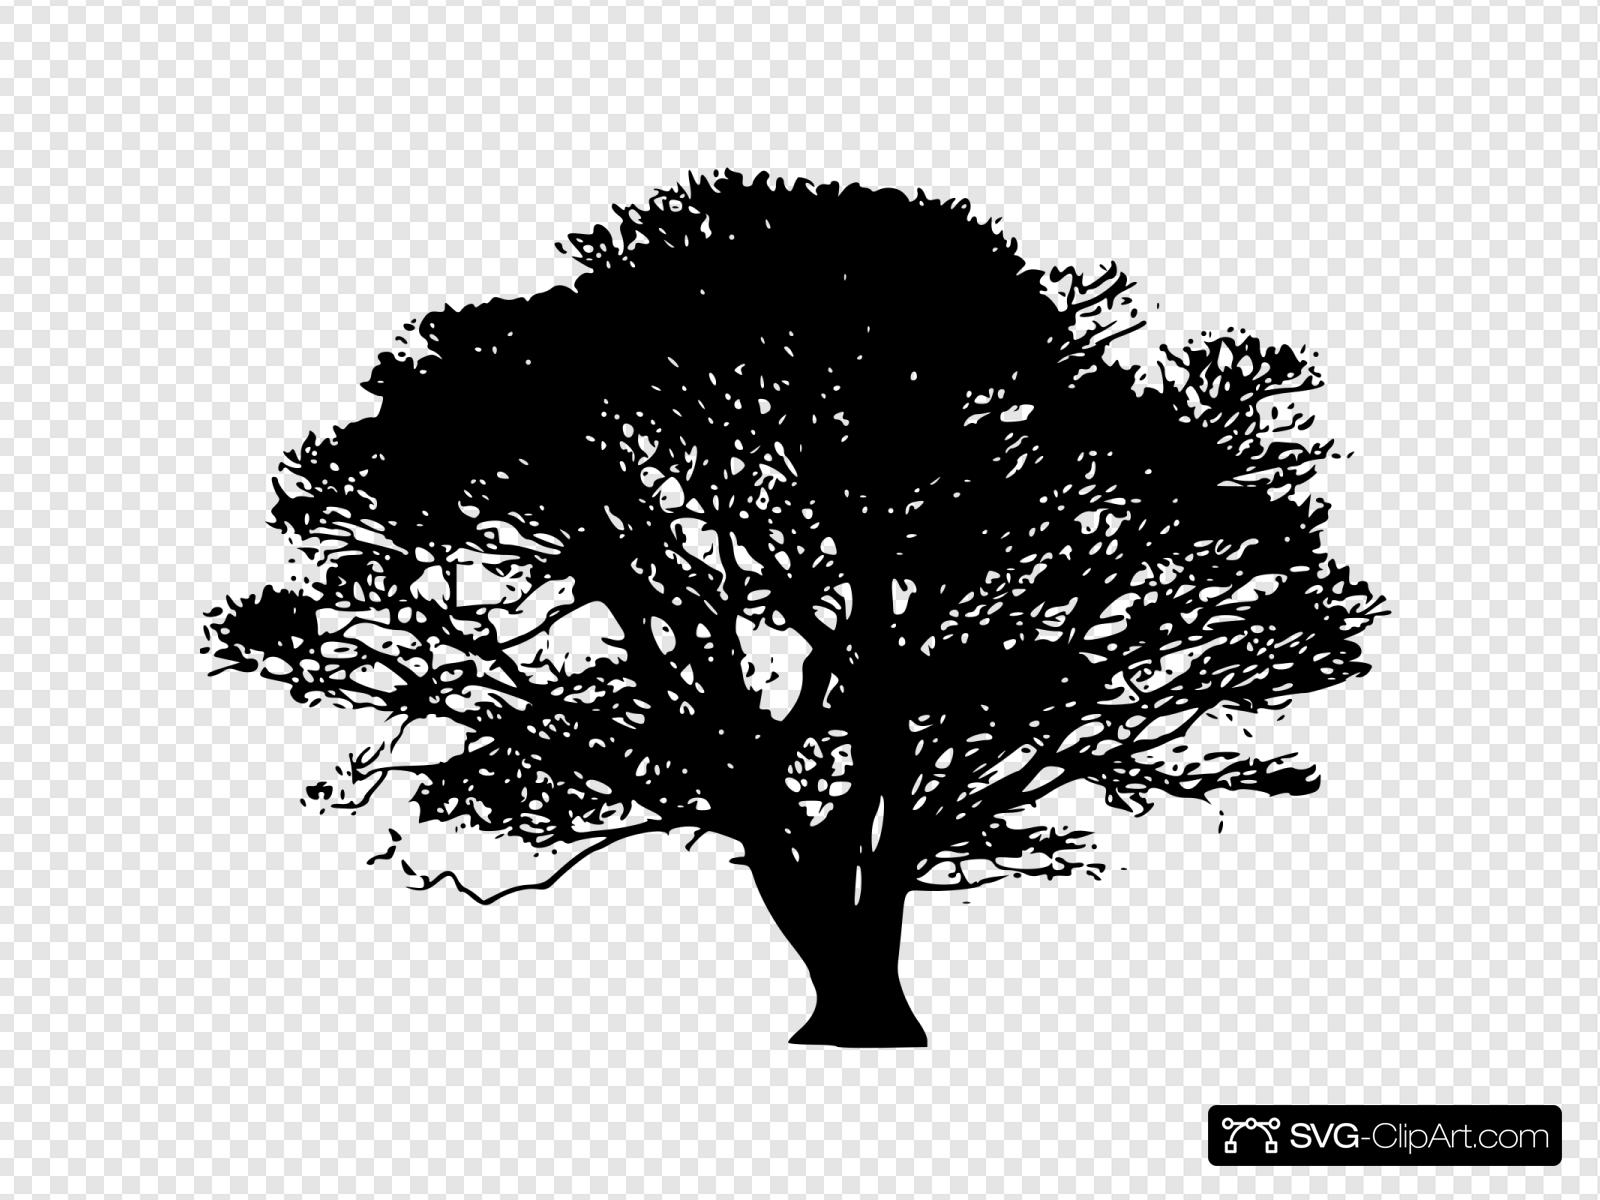 Oak Tree With Transparent Background Clip art, Icon and SVG